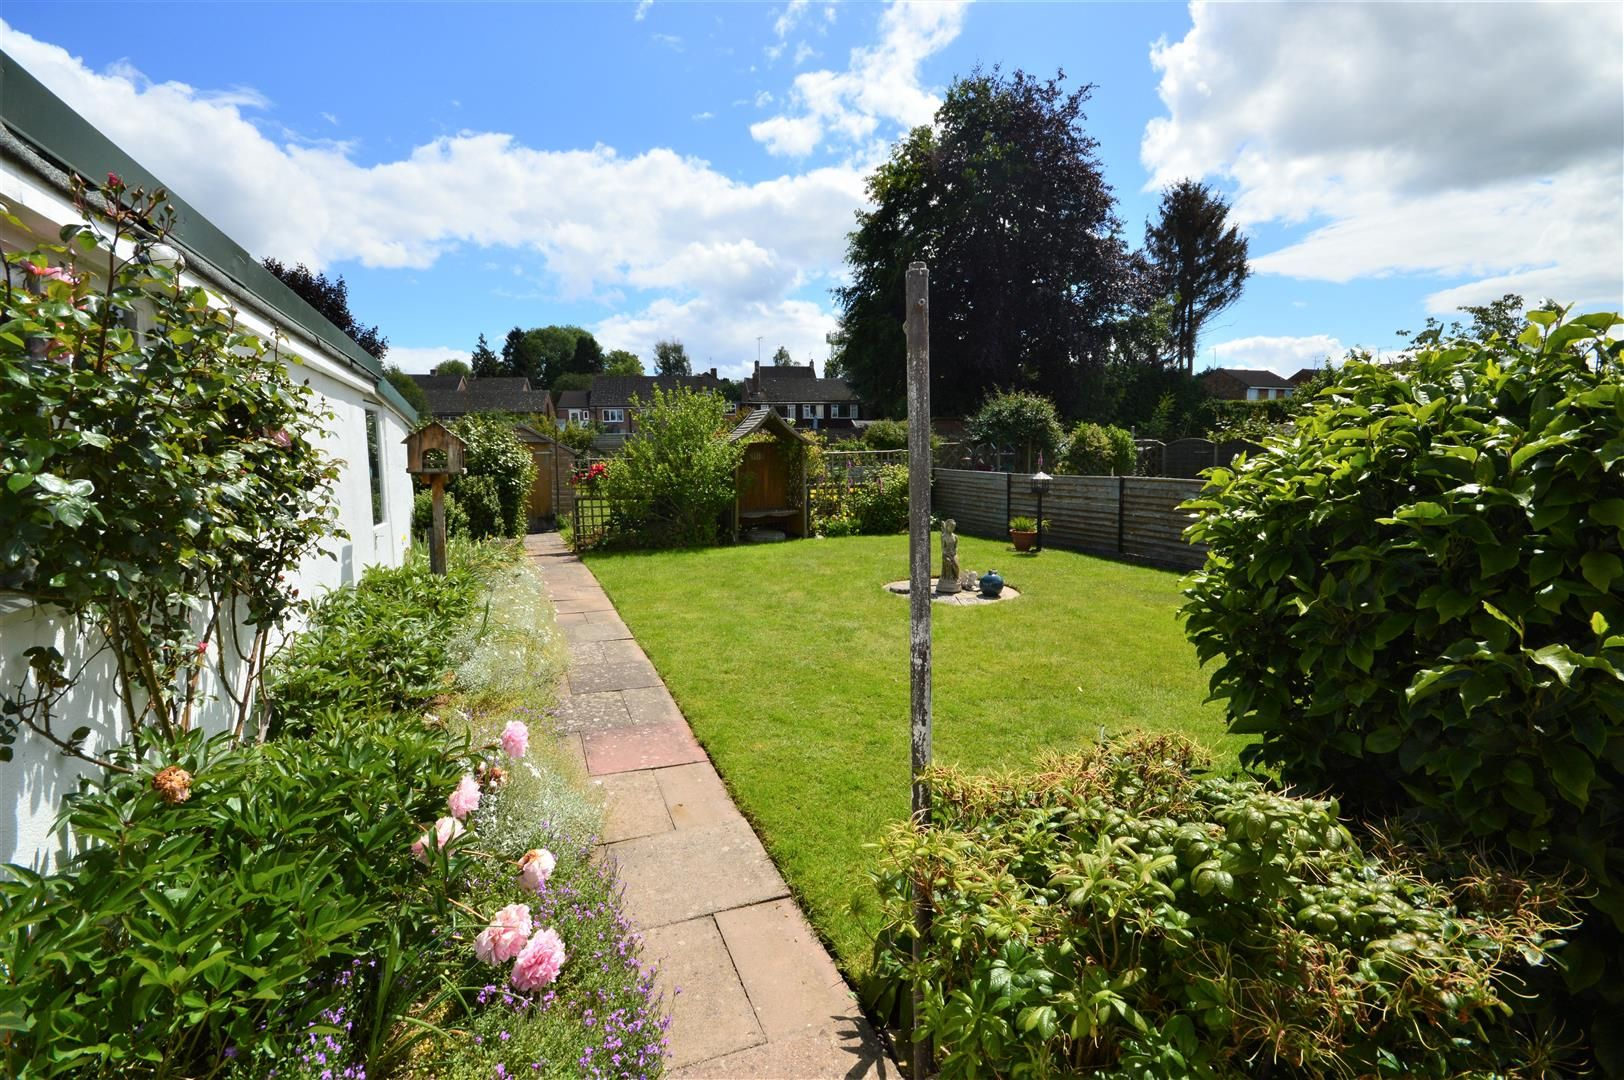 2 bed semi-detached-bungalow for sale in Leominster  - Property Image 9